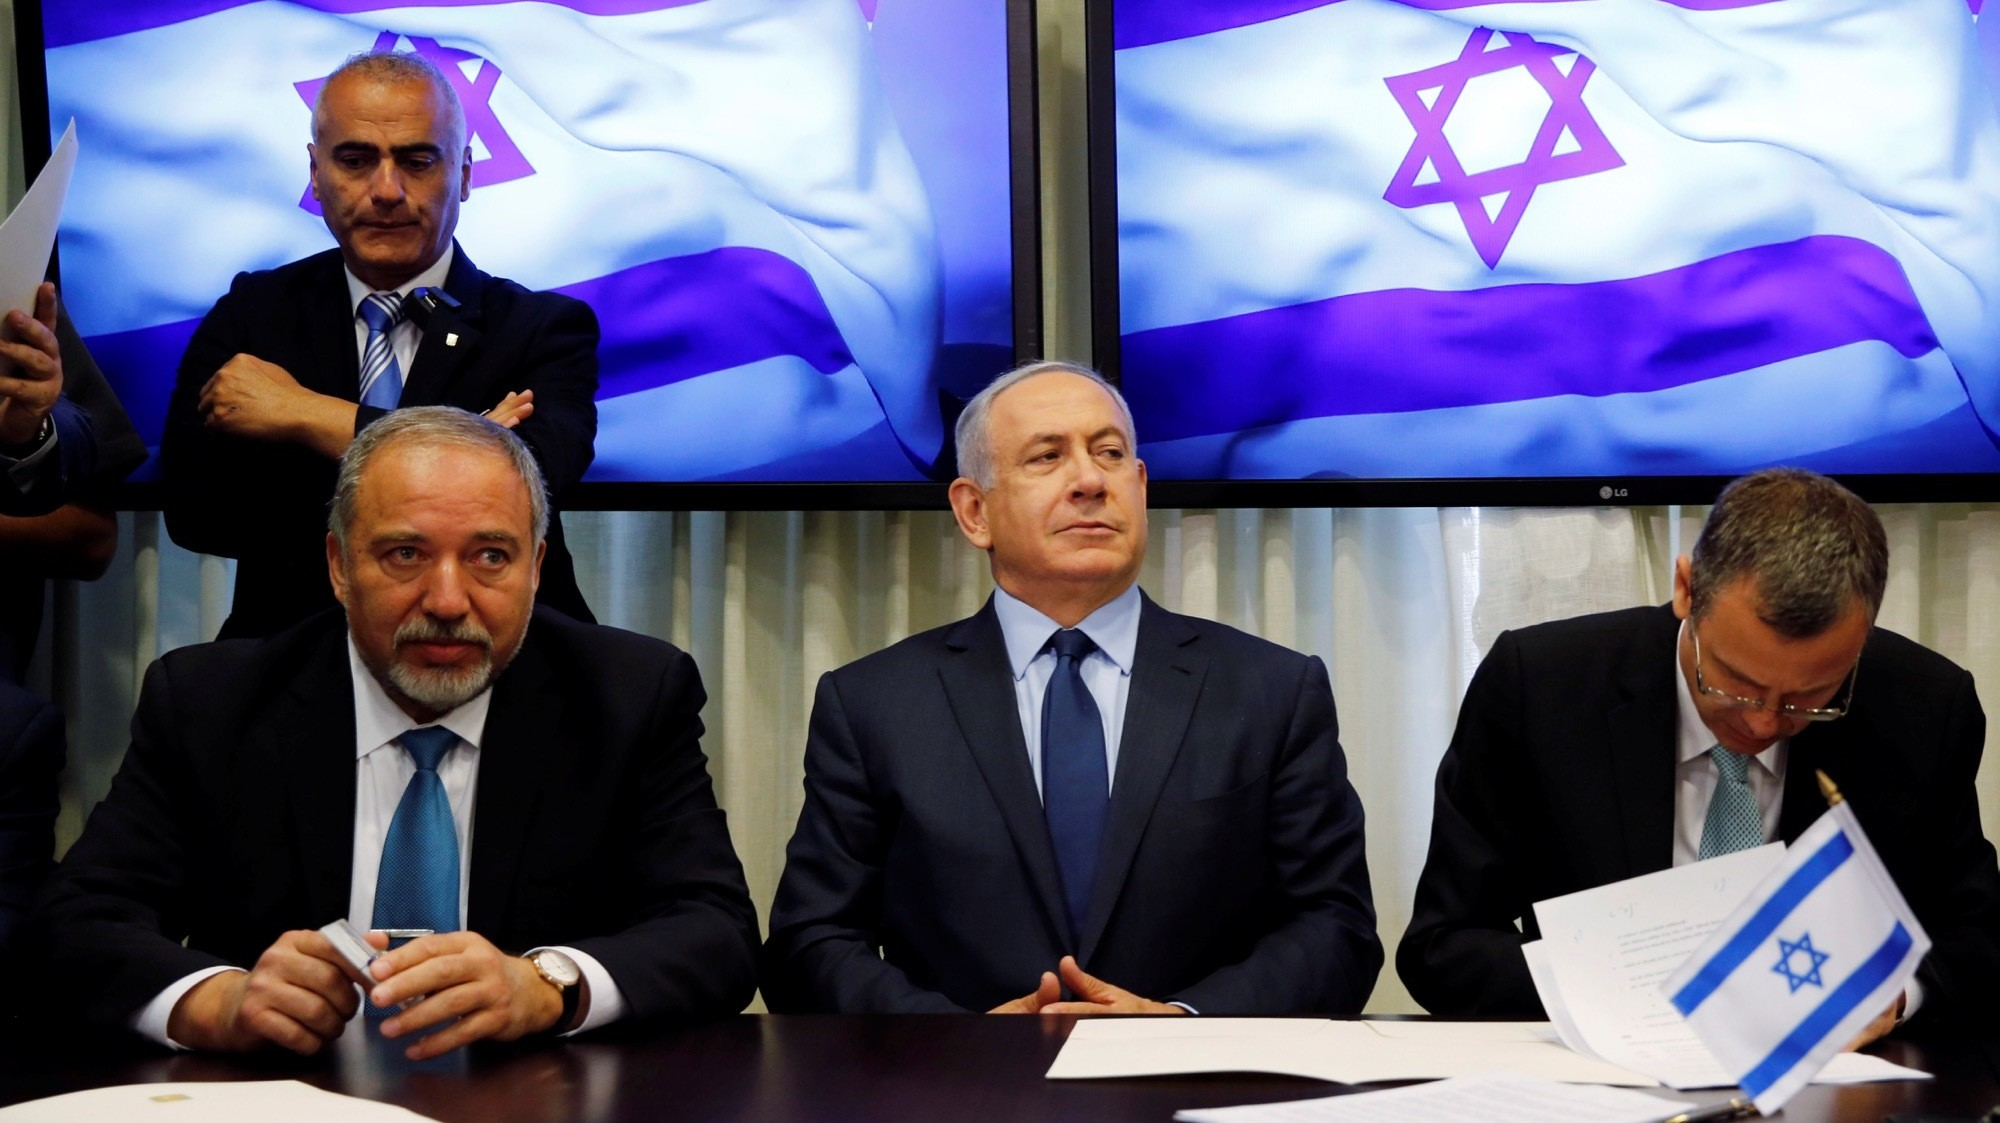 Benjamin Netanyahu Just Formed the Most Right-Wing Government in Israel's History